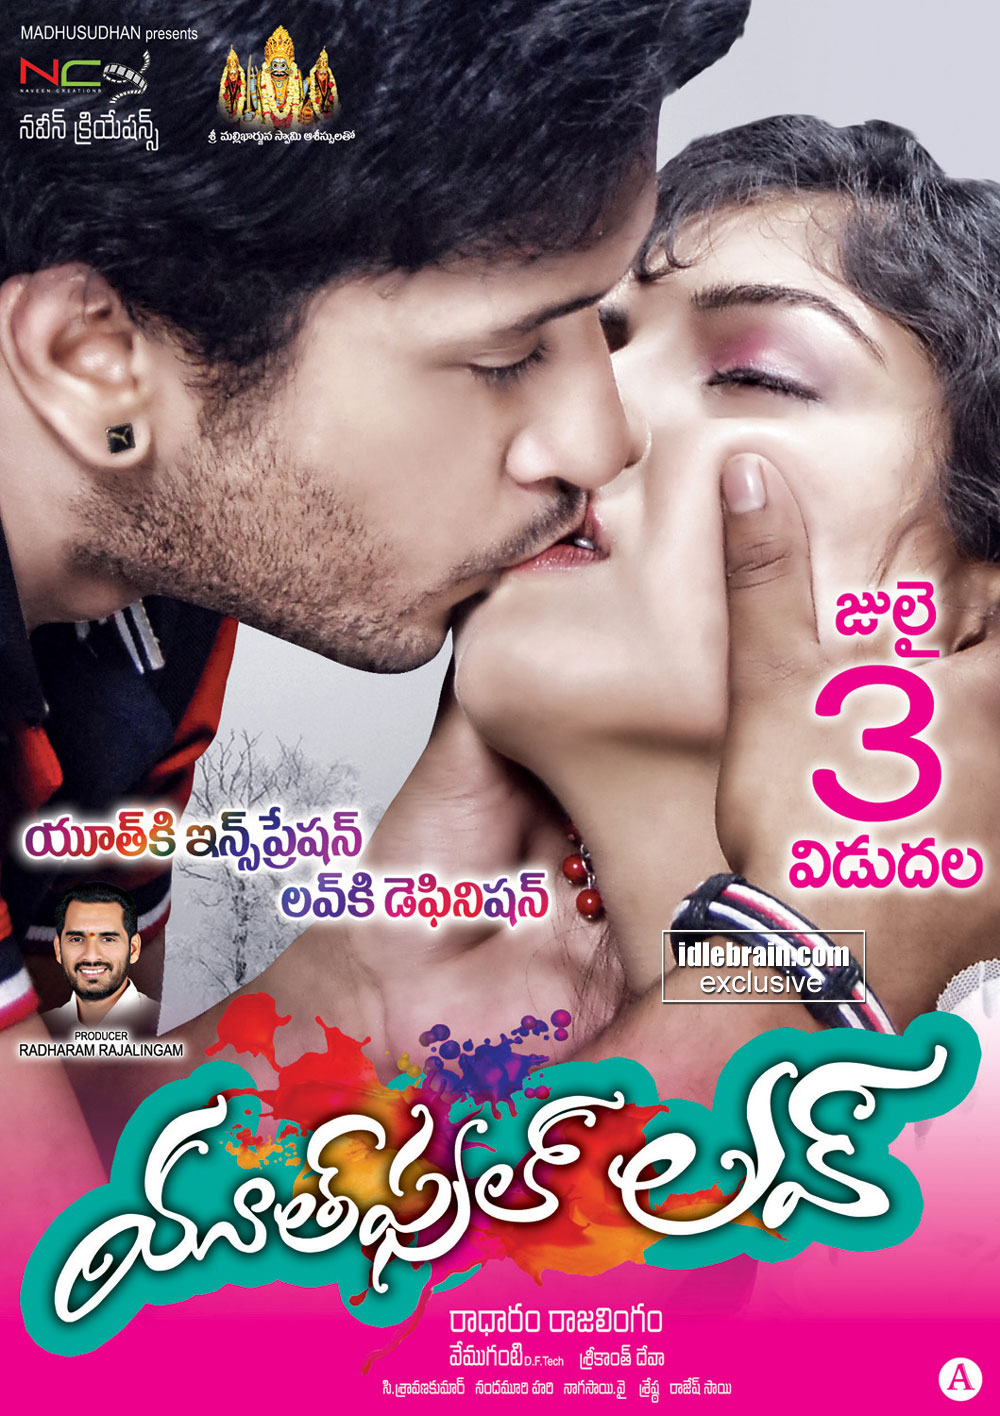 Youthful Love Movie Stills